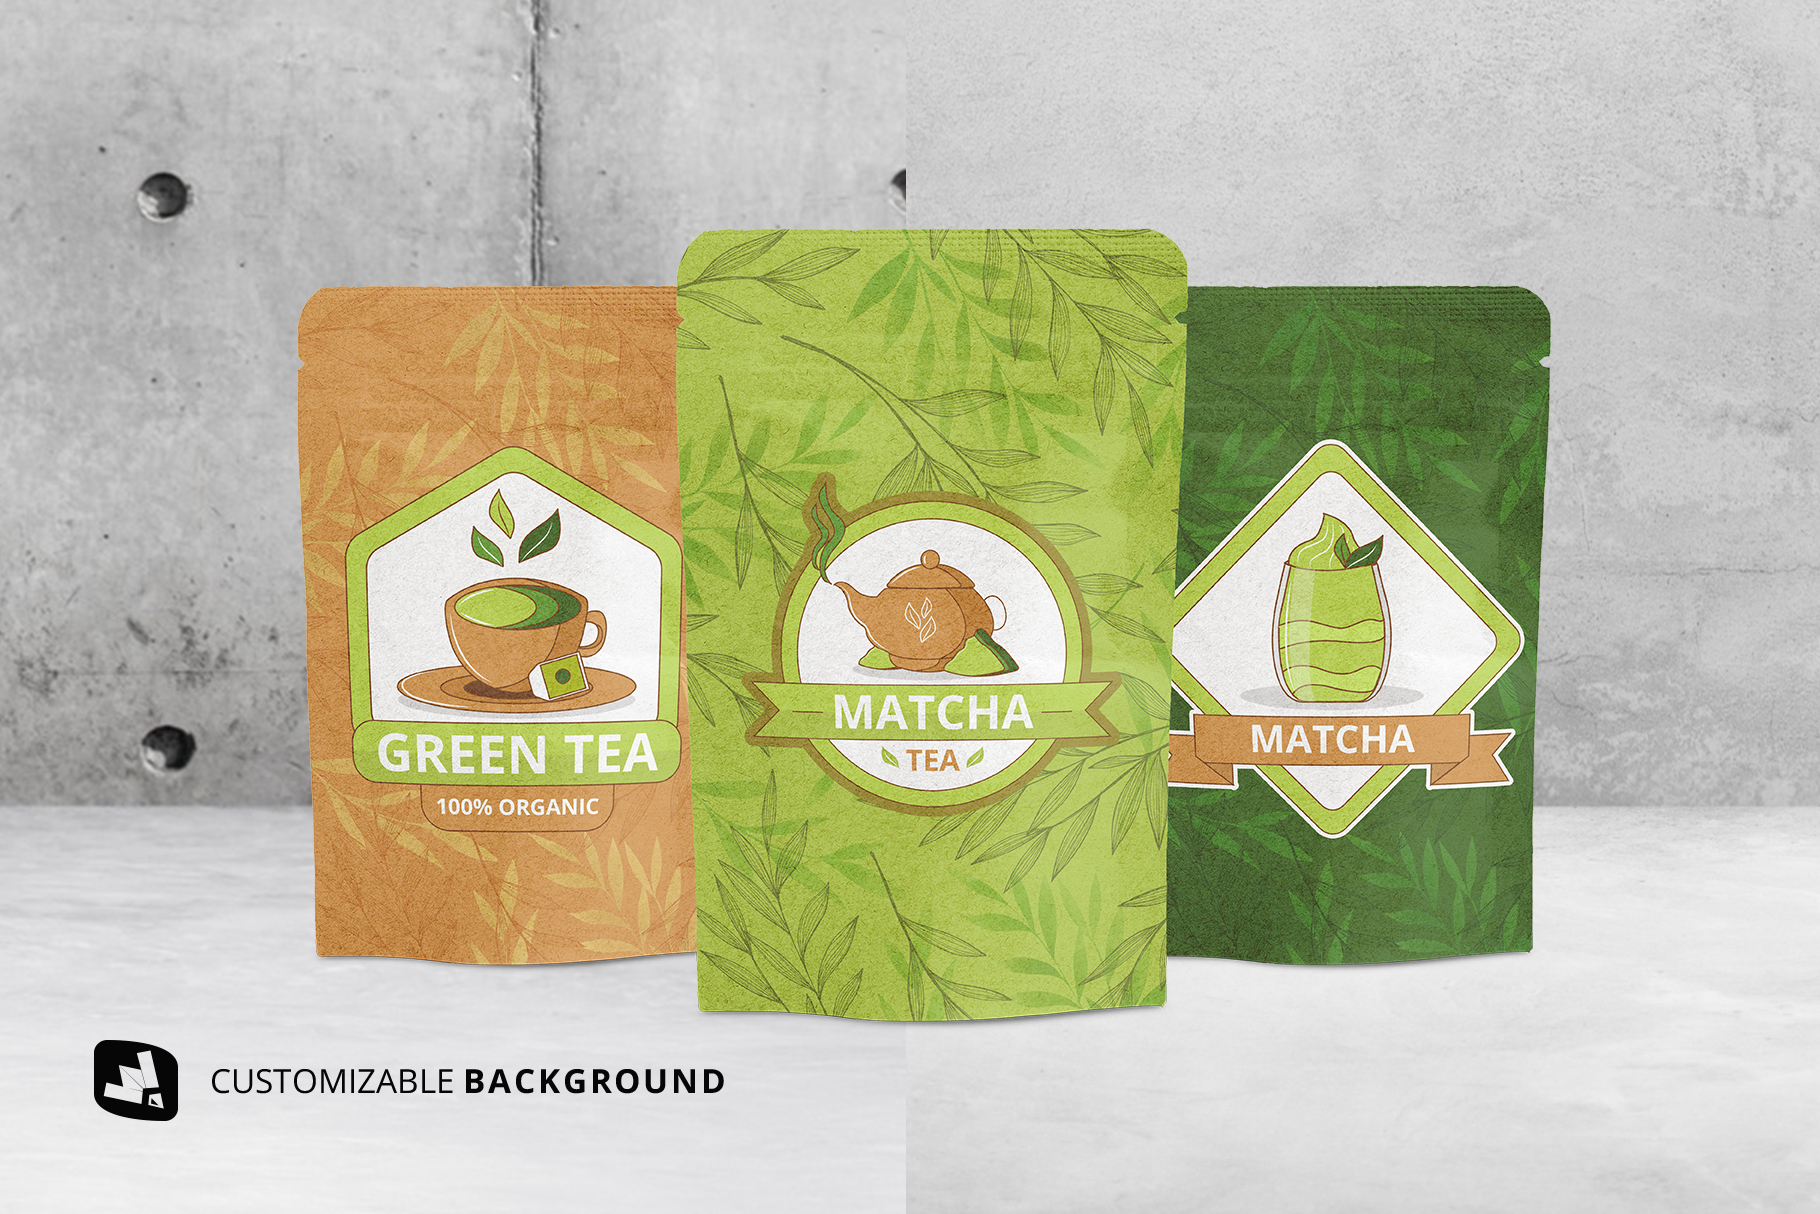 background options of the craft paper pouch packaging mockup